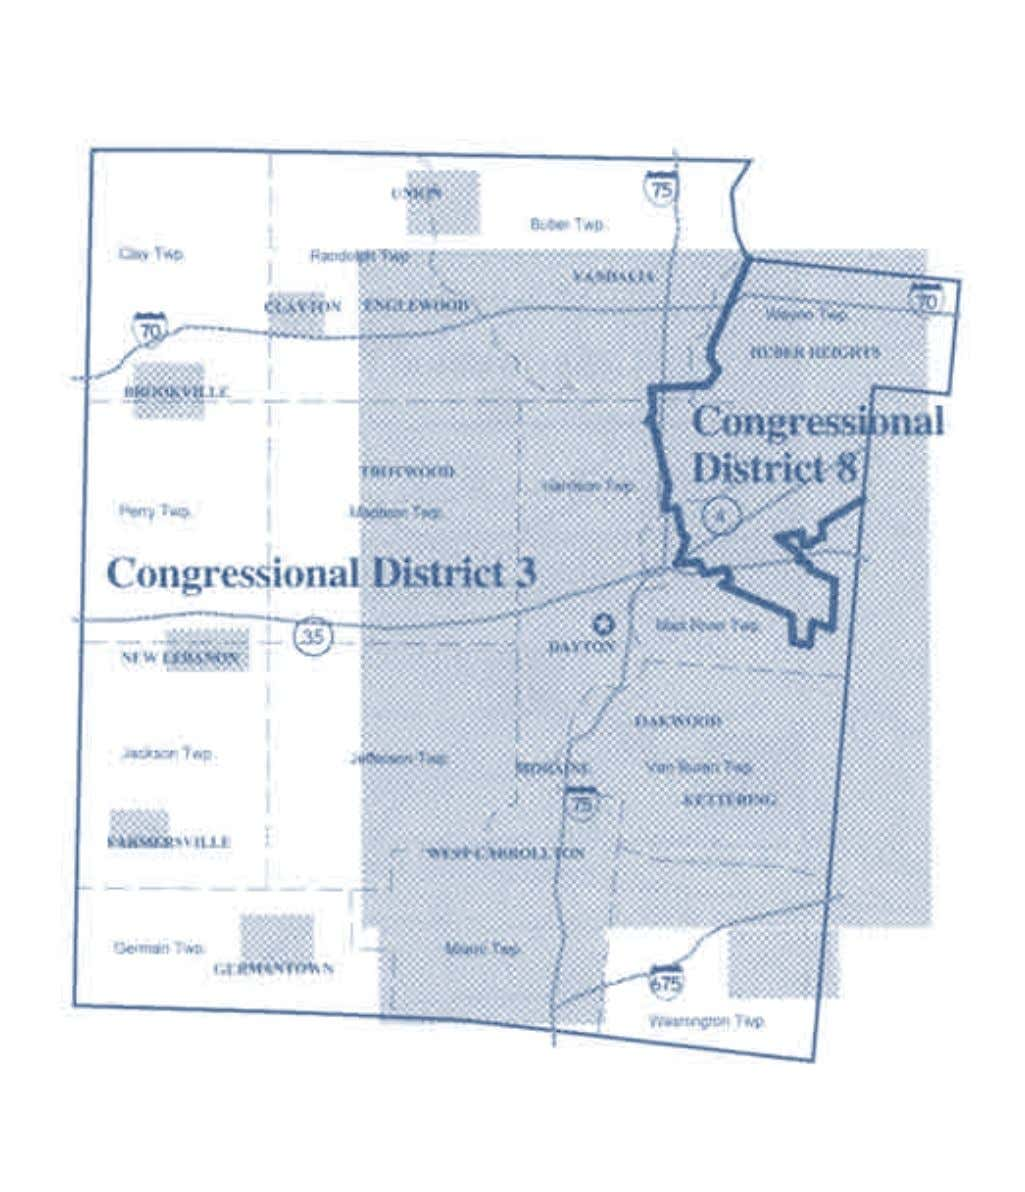 2002-2012 OhiO District Maps Montgomery County Congressional Districts Office of the Ohio Secretary of State 19